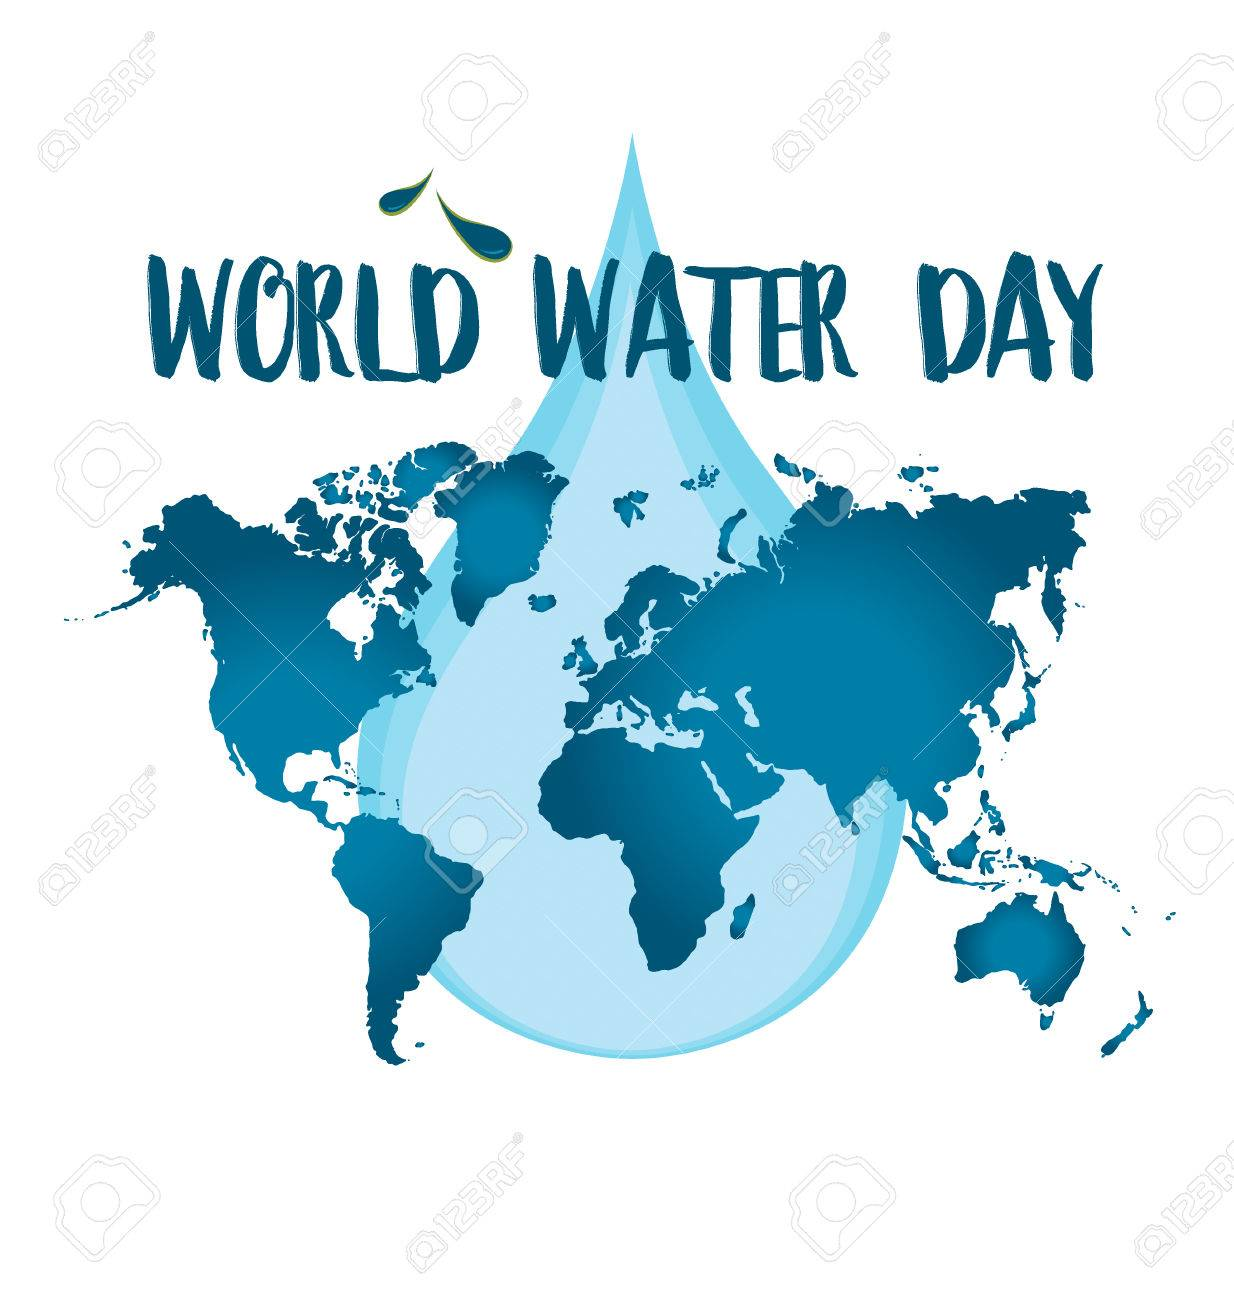 World water day concept with water drop made by globe. Vector illustration. - 53127435